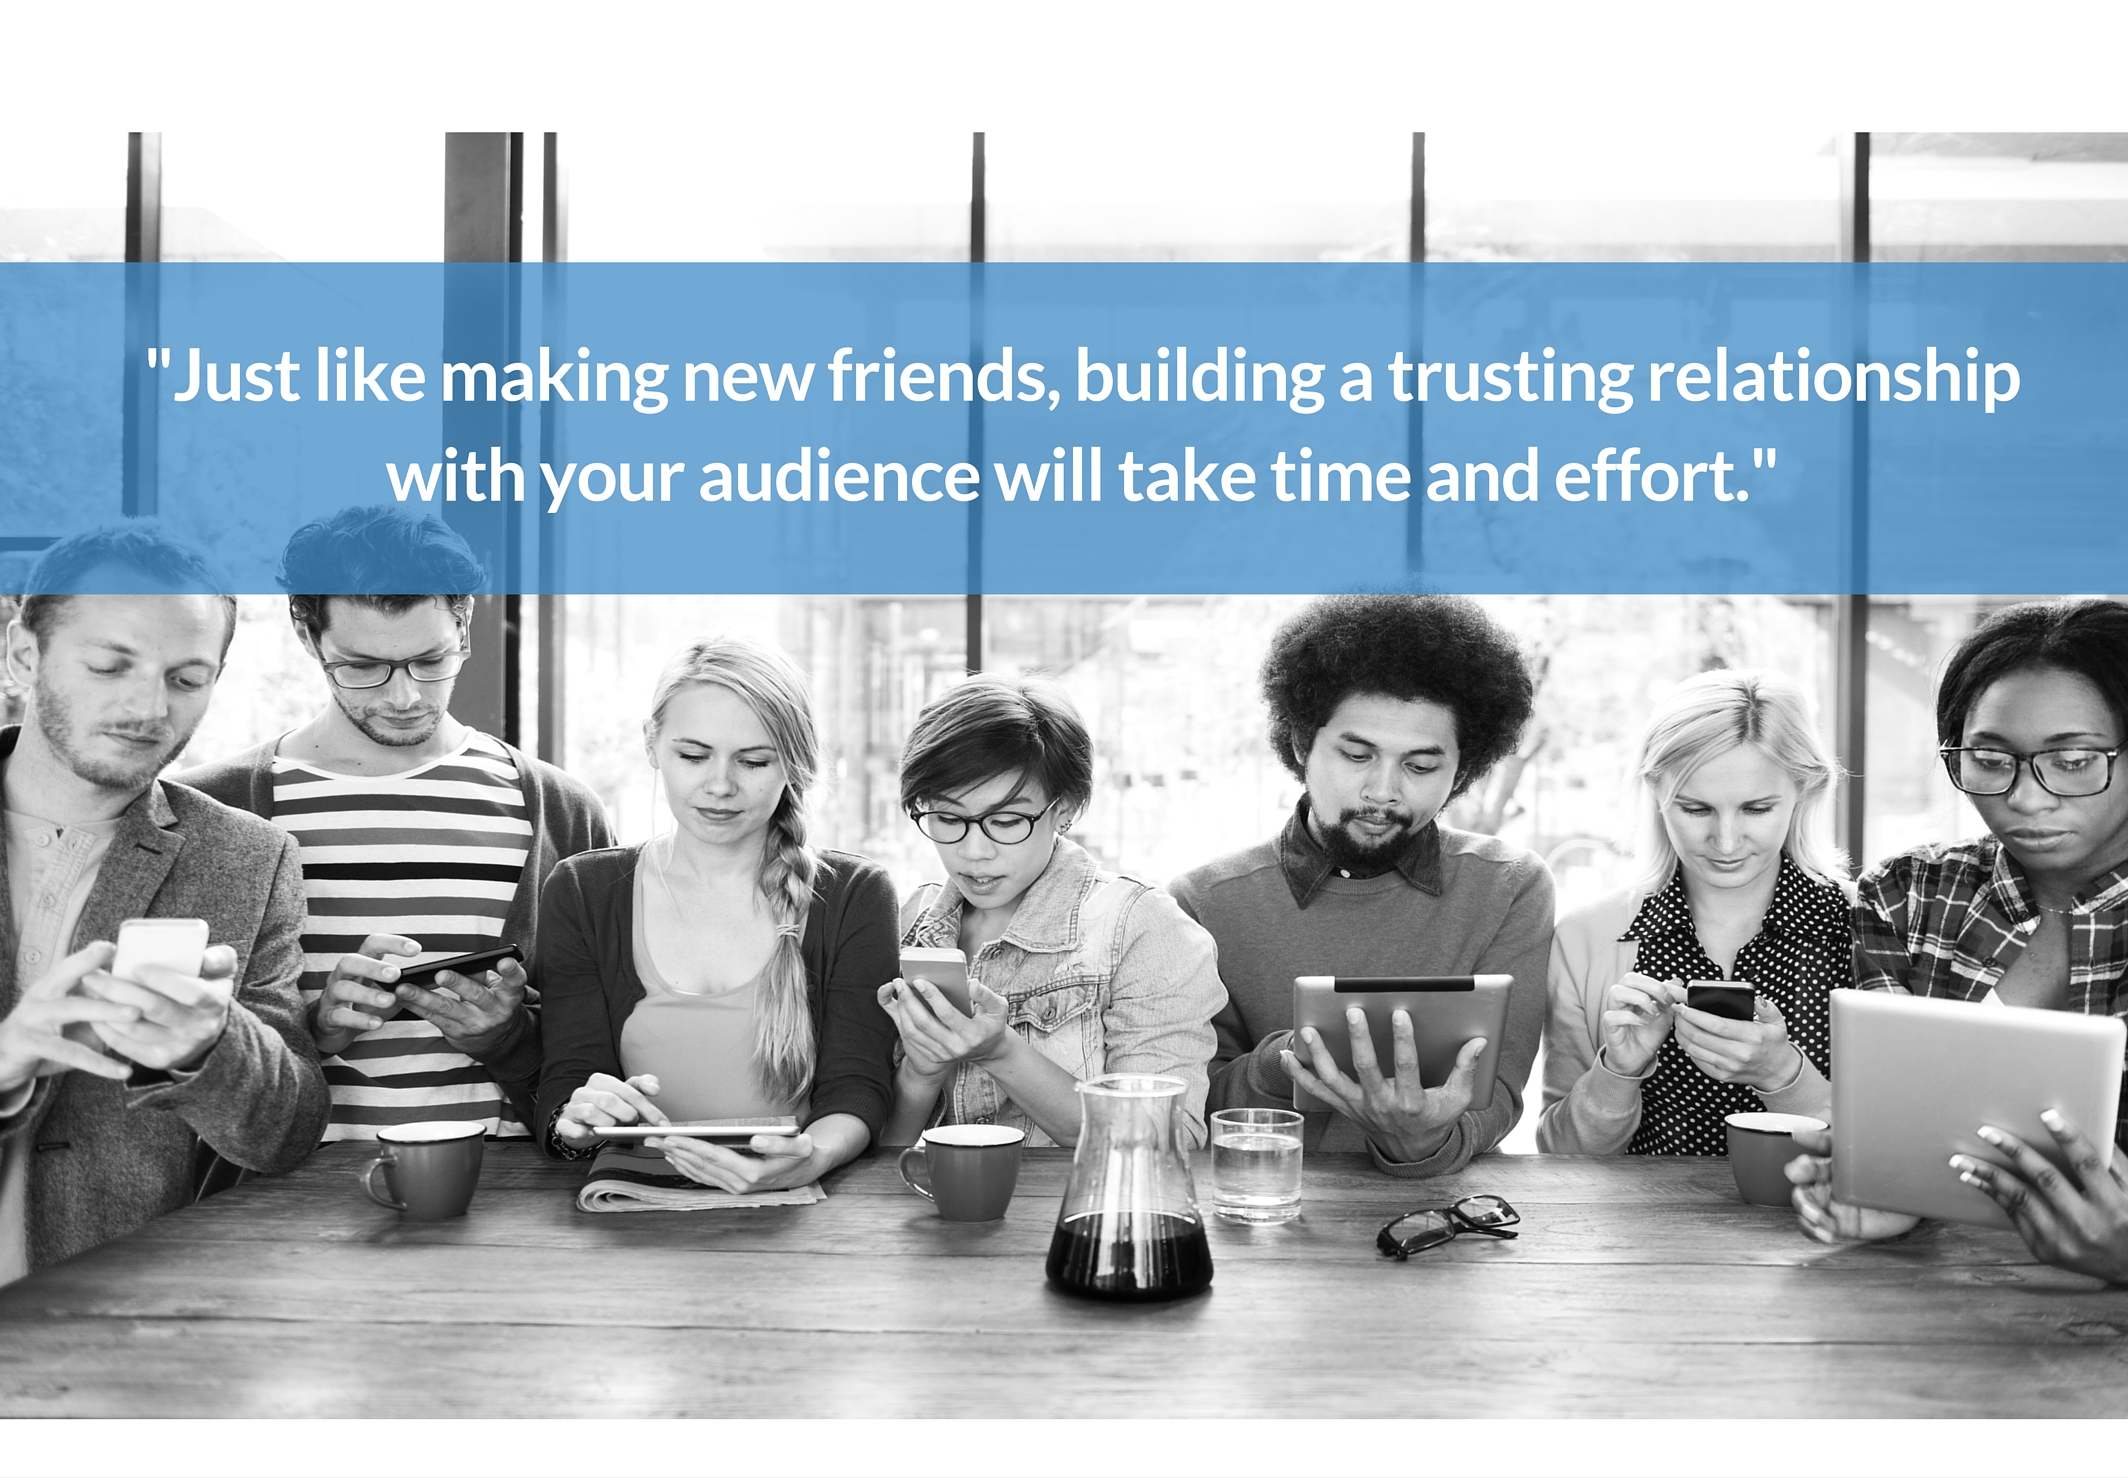 Just like making new friends, building a trusting relationship with your audience will take time and effort.